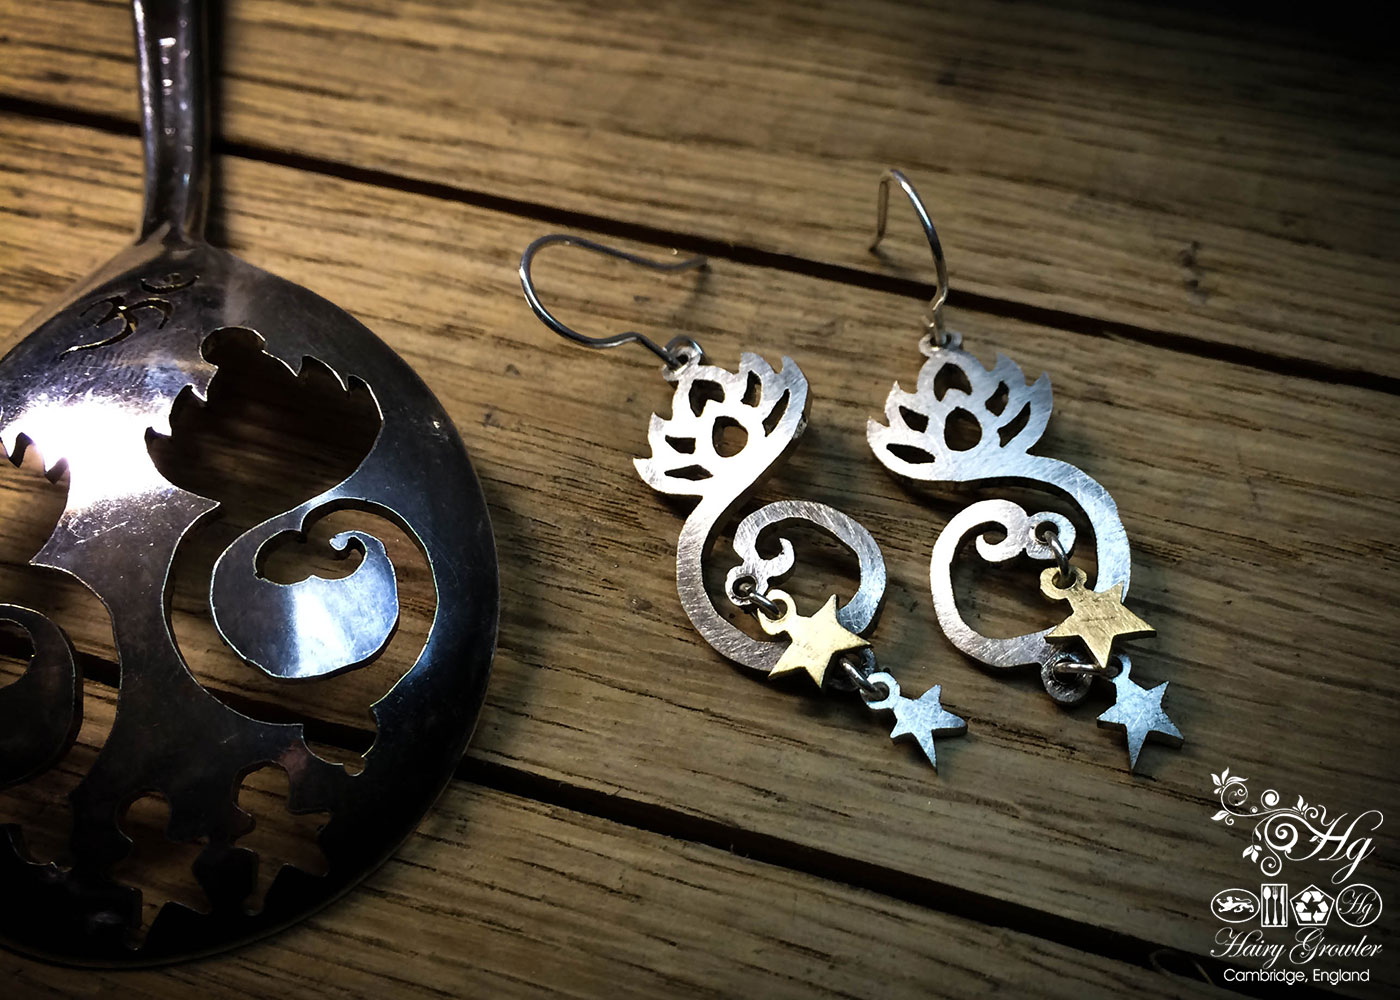 handcrafted and recycled spoon lotus-flower earrings